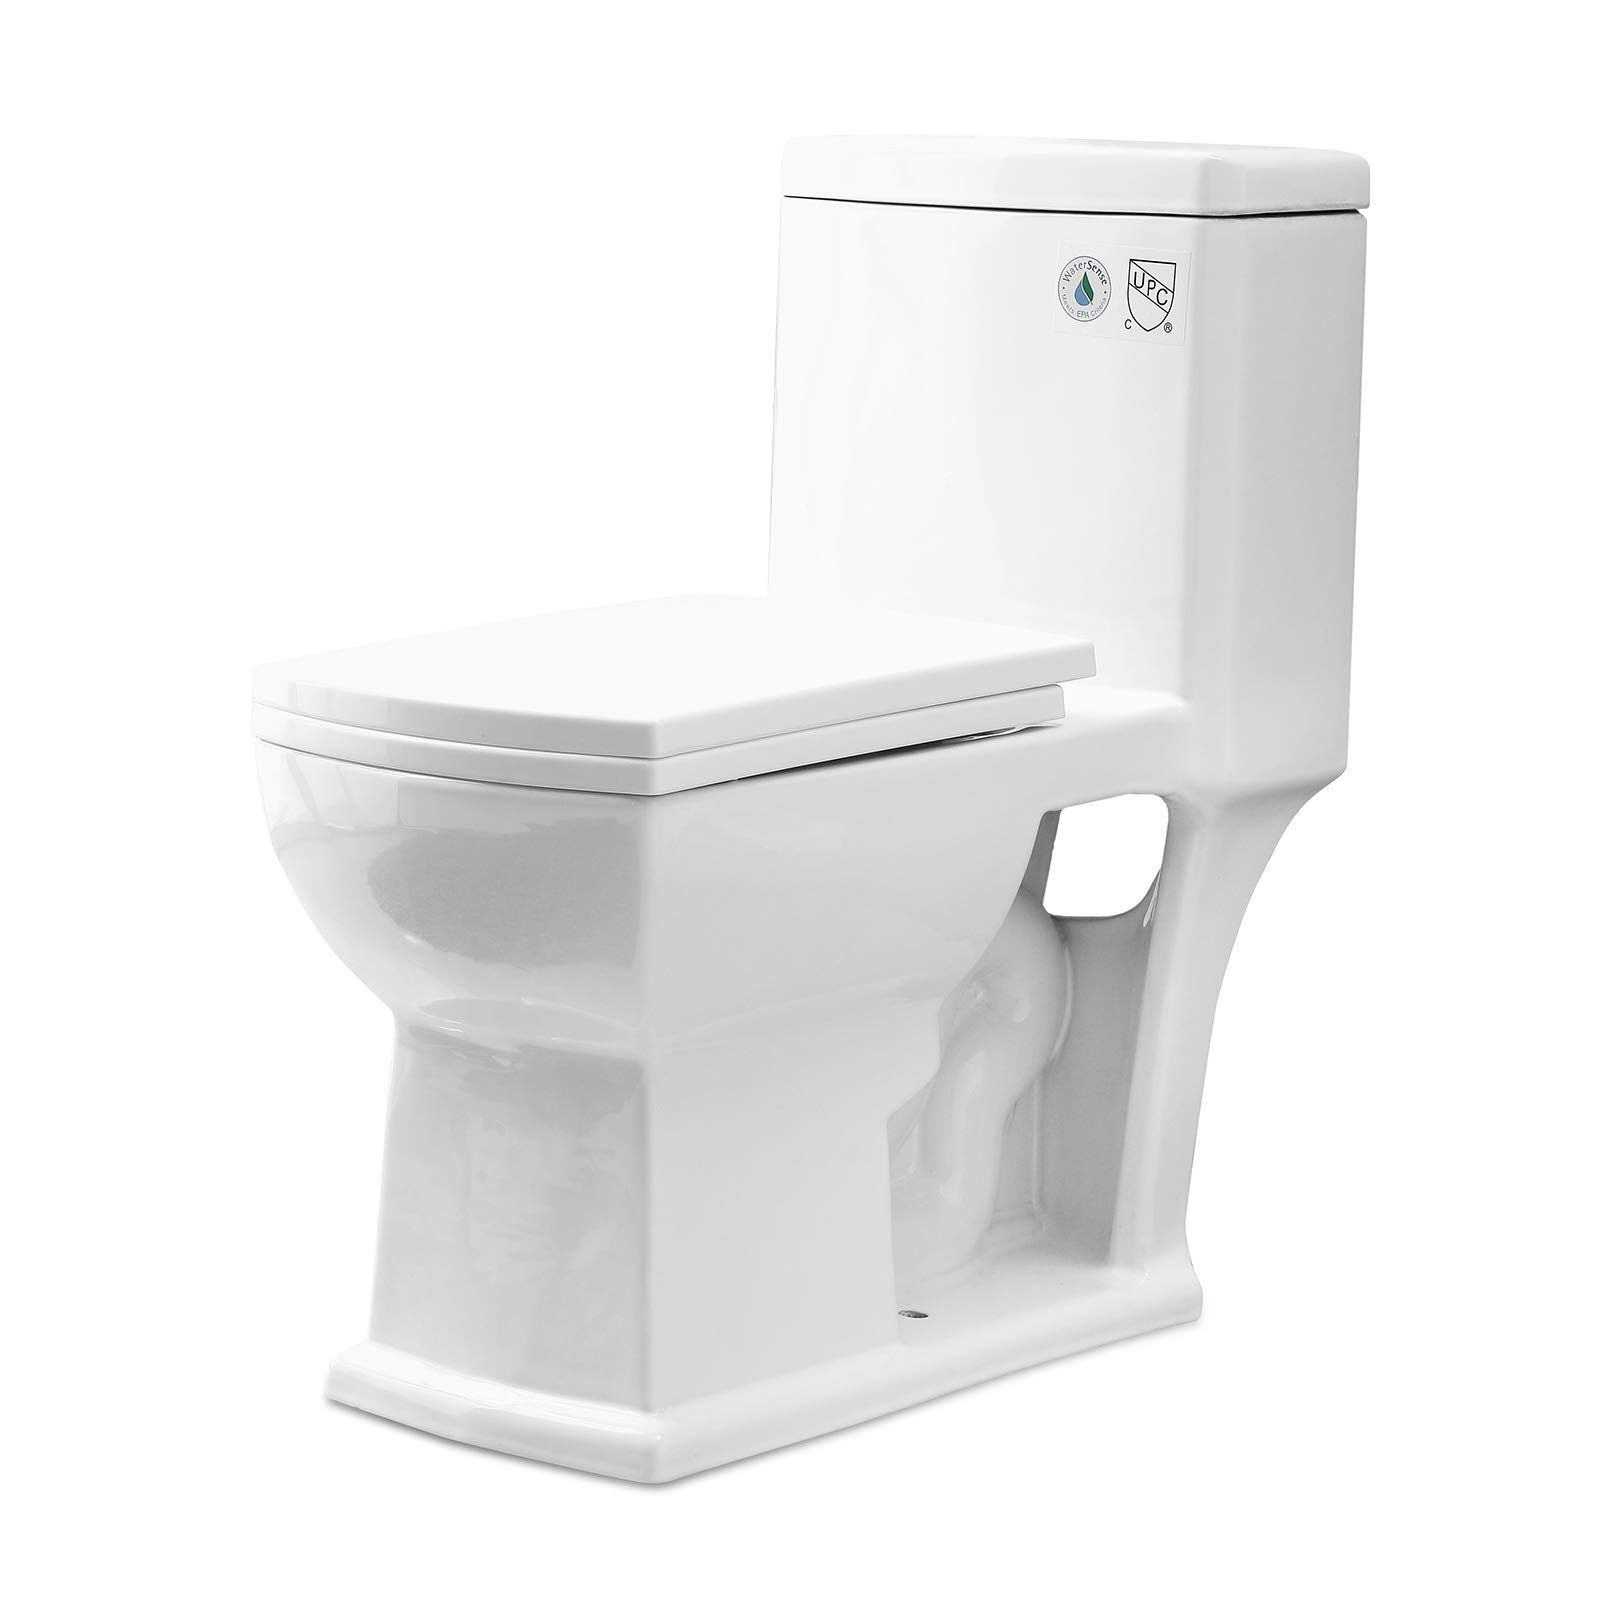 Mecor Elongated One-Piece Toilet Siphon Dual Flushing,Small Toilet Soft Closing Quick Release Seat 0.8/1.28Gpf,Cotton White. (26.4''X16.5''X29.9'') by mecor